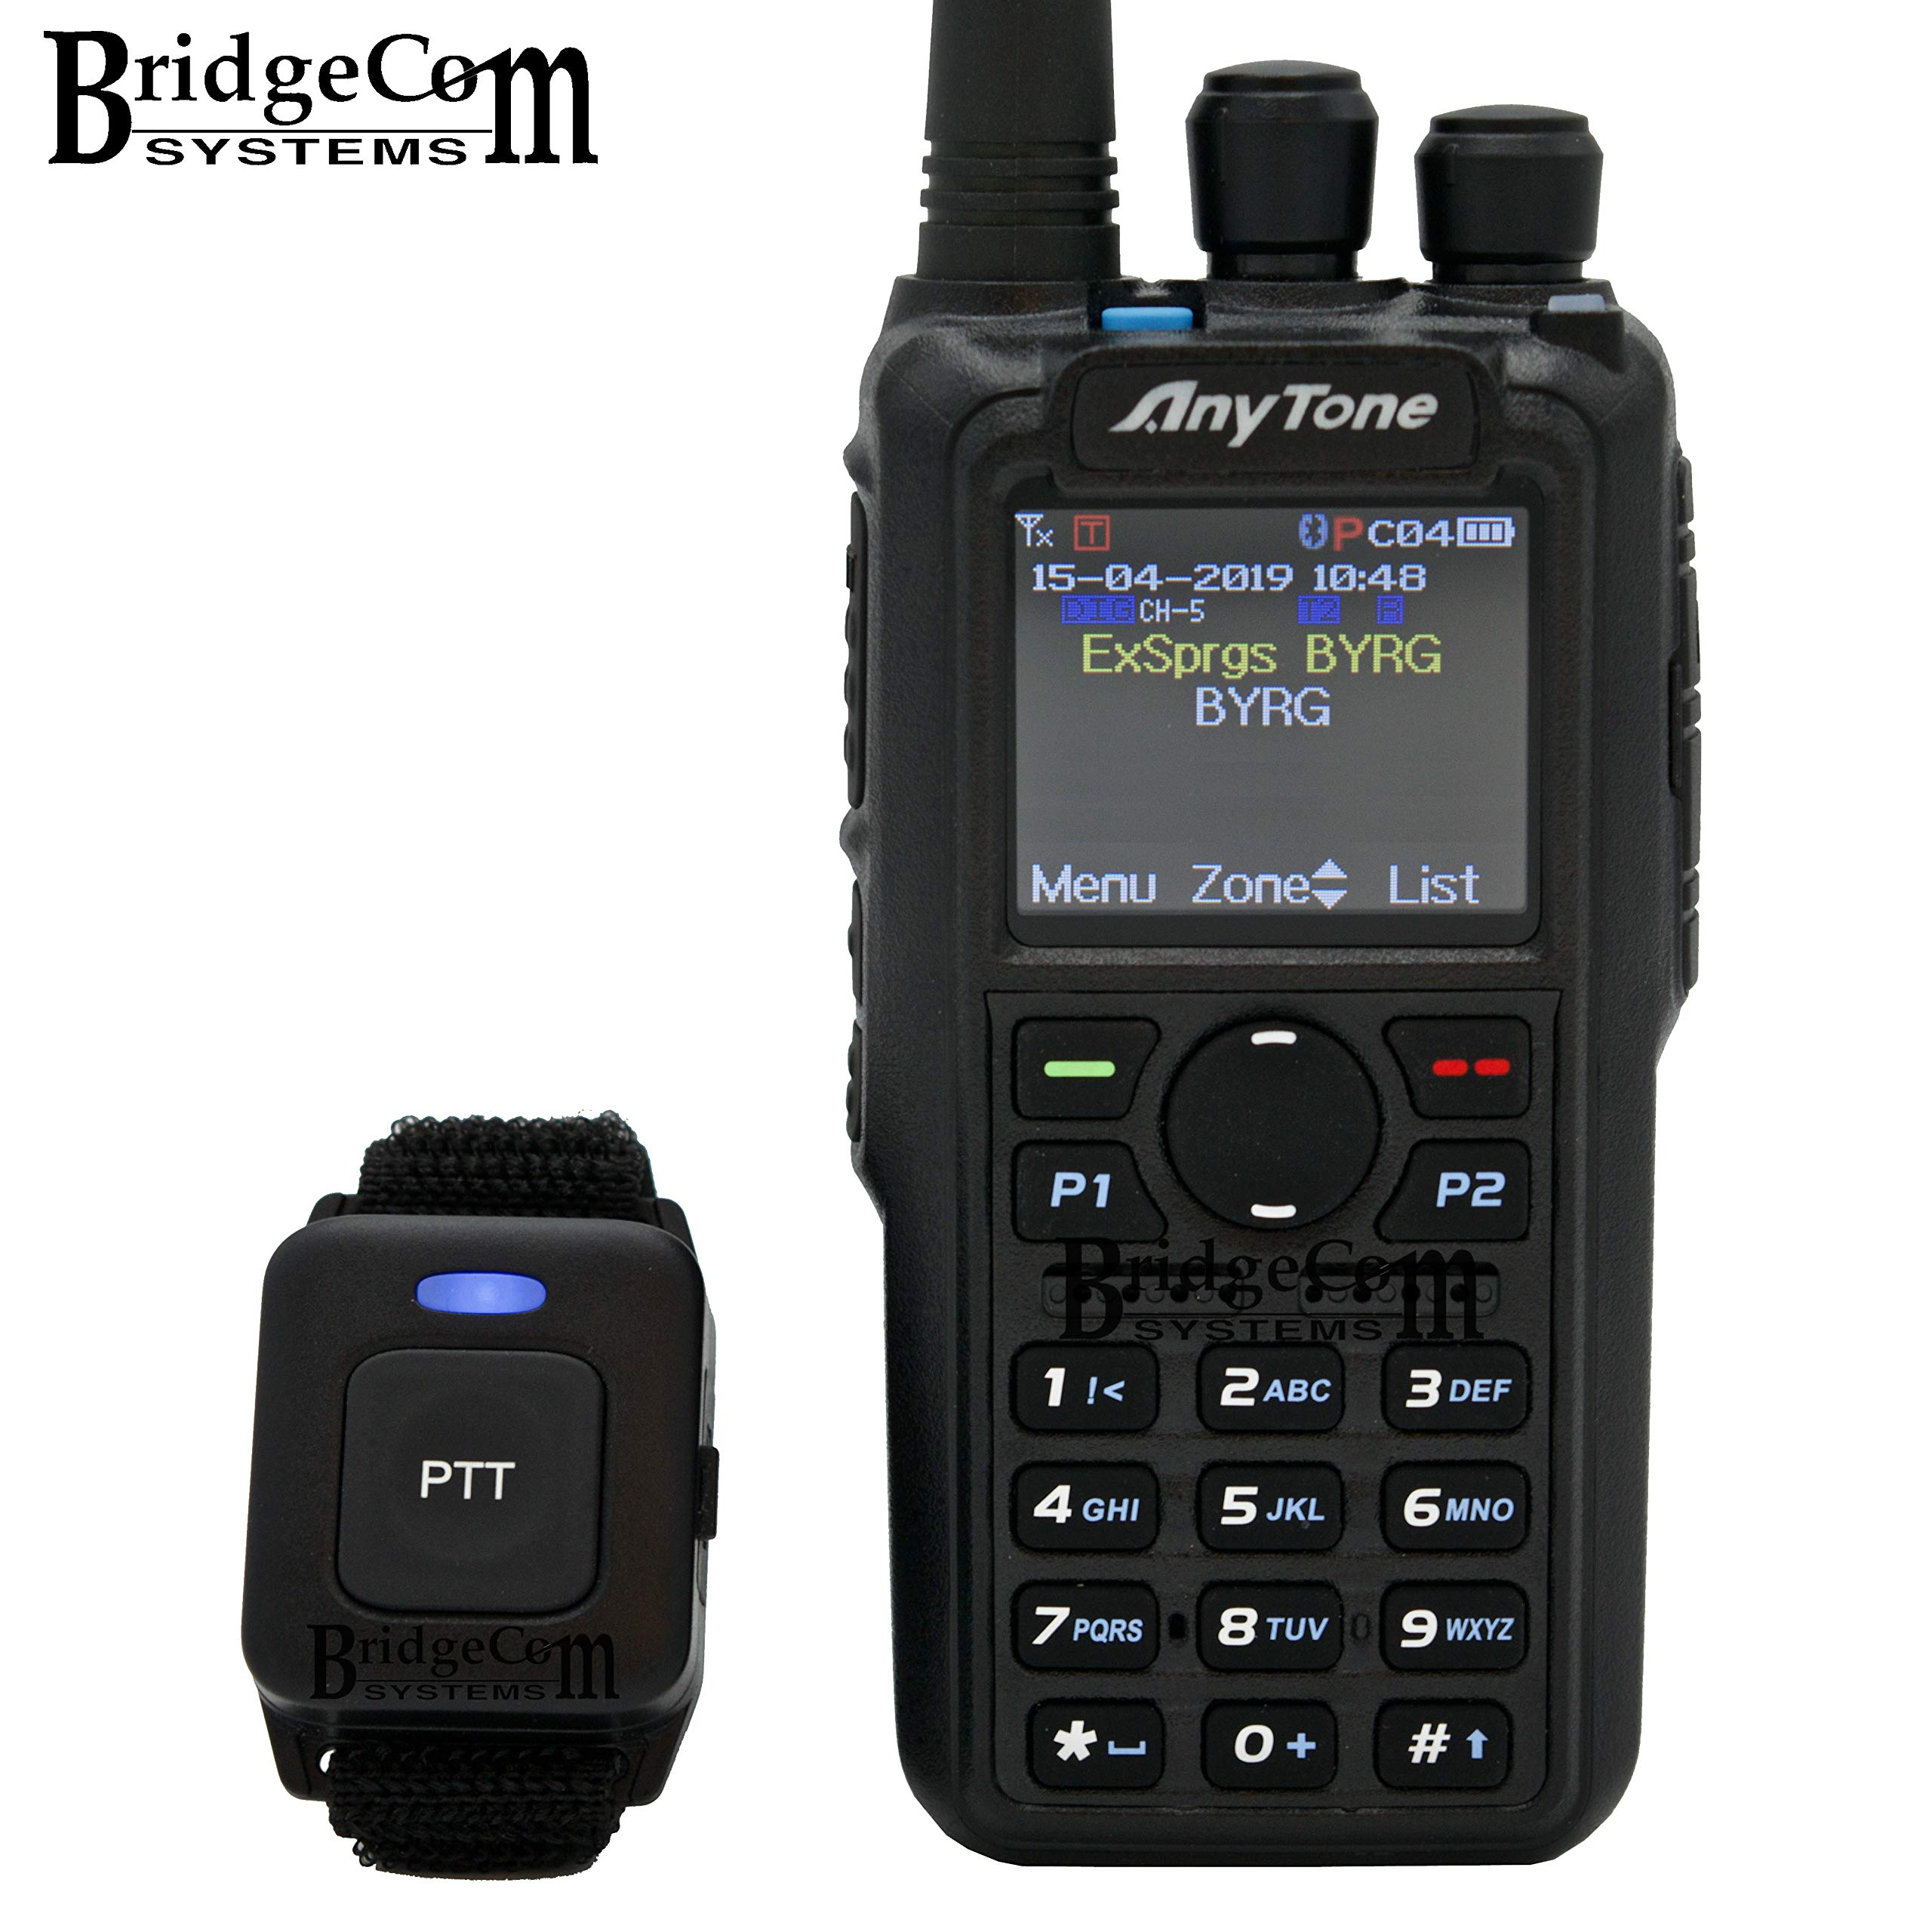 AnyTone AT-D878UV Plus Bluetooth W/GPS. Free Programming Cable, 3100mAh Battery, AnyTone Course on BridgeCom University ($97 Value), and BridgeCom Support. by BridgeCom Systems